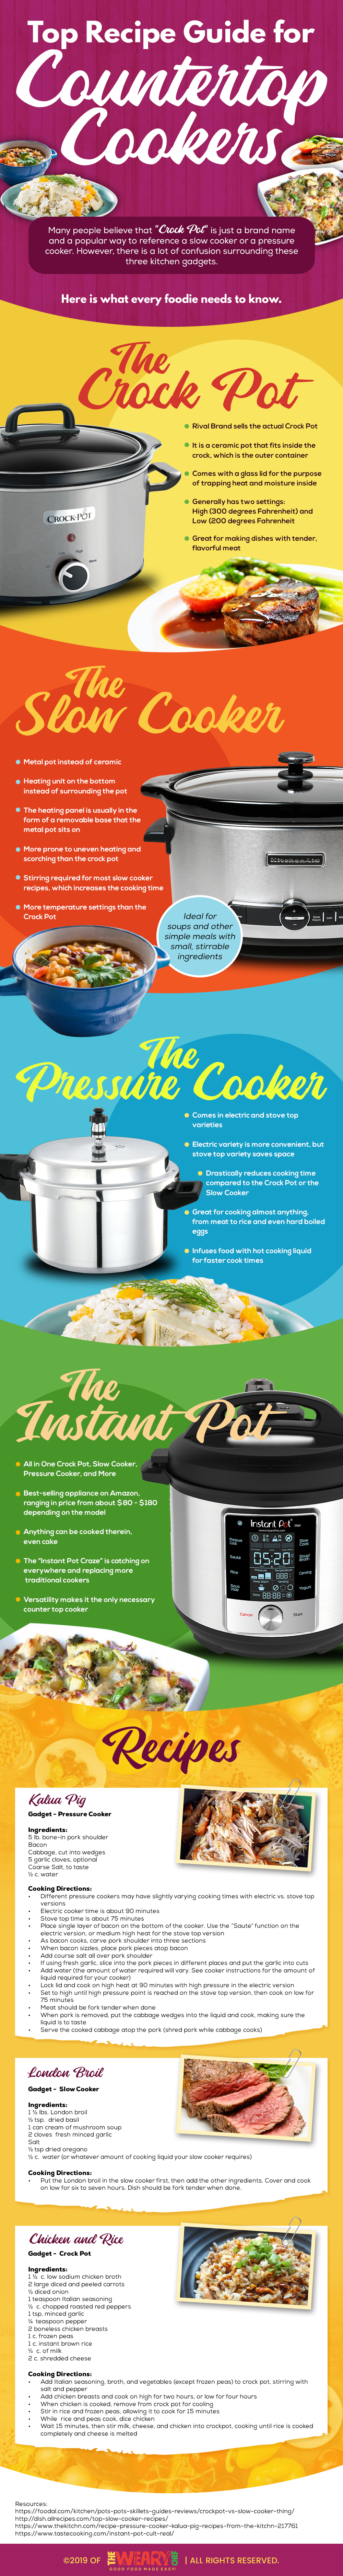 Top Recipe Guide For Countertop Cookers